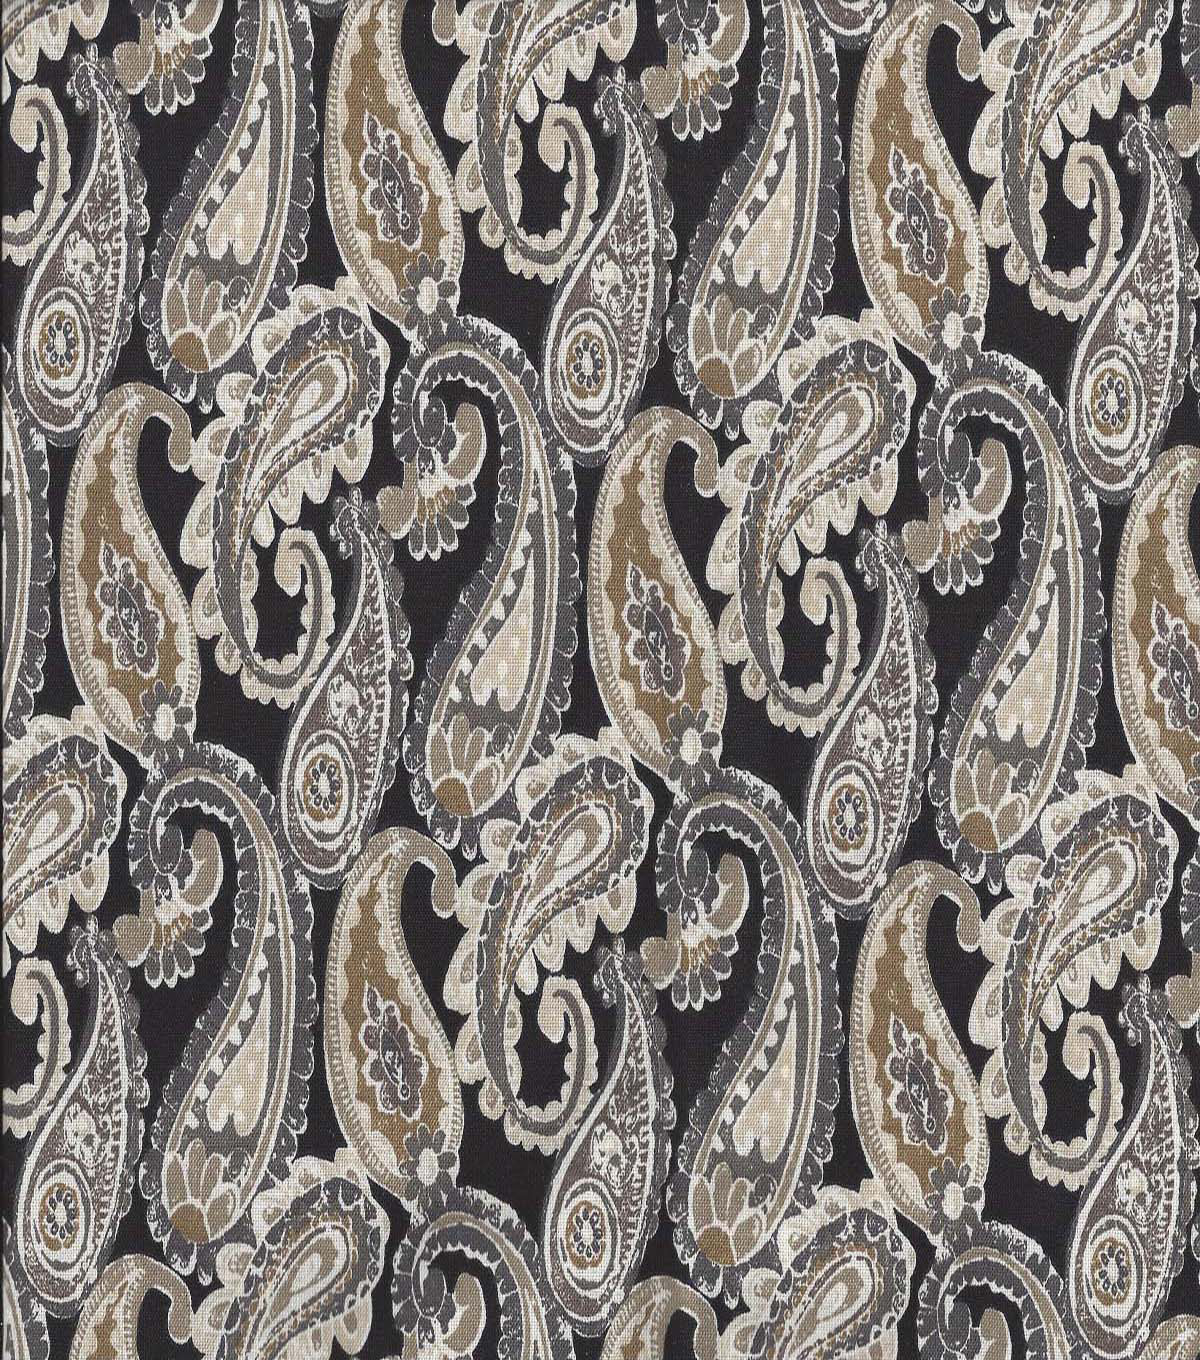 Keepsake Calico Cotton Fabric -Apaloosa Onyx